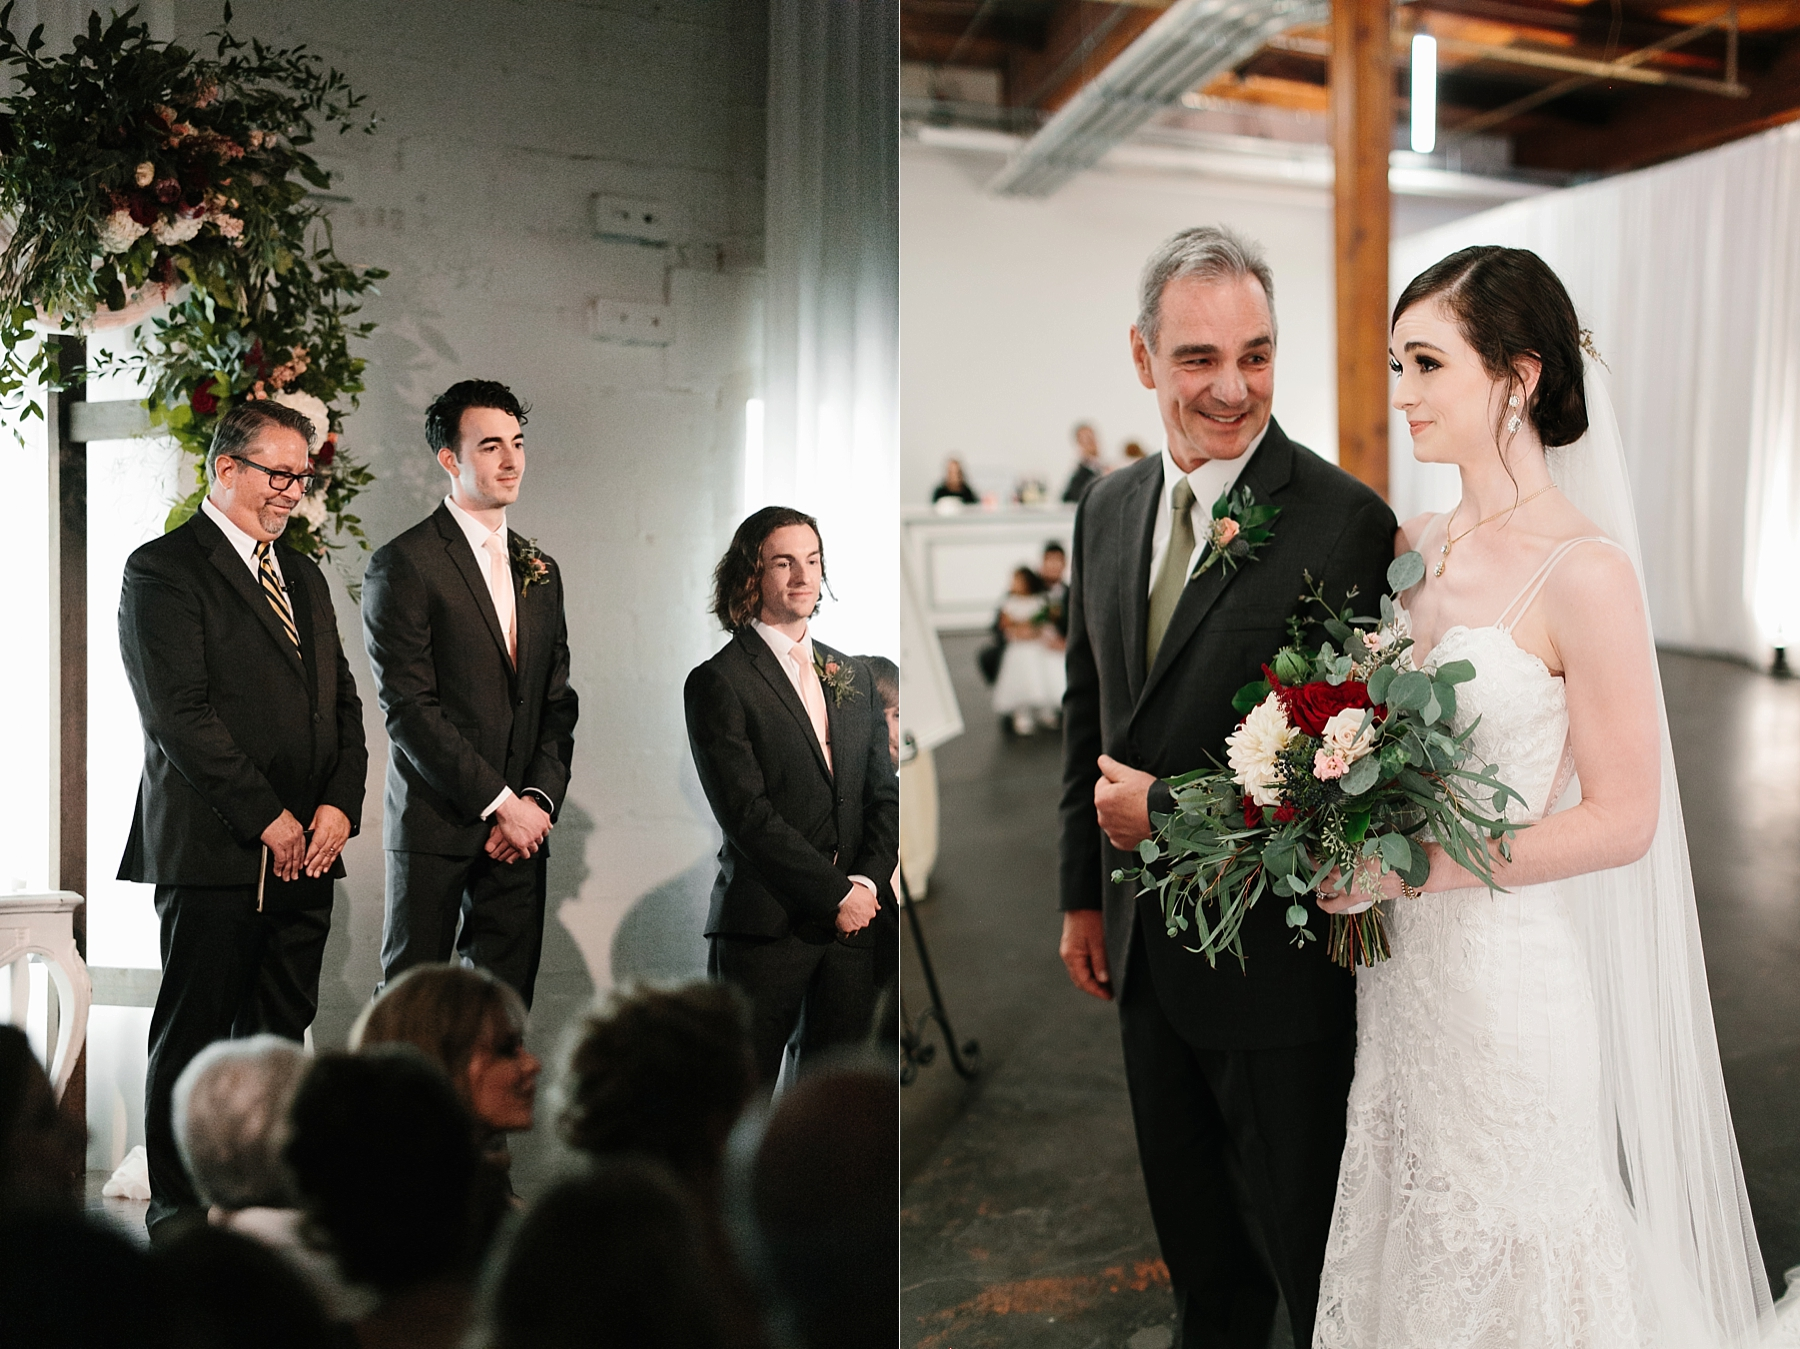 Emily + Caleb _ an elegant, intentional, industrial style wedding with navy + gold accents at 6500 in Dallas, TX by North Texas Wedding Photographer Rachel Meagan Photography _ 075